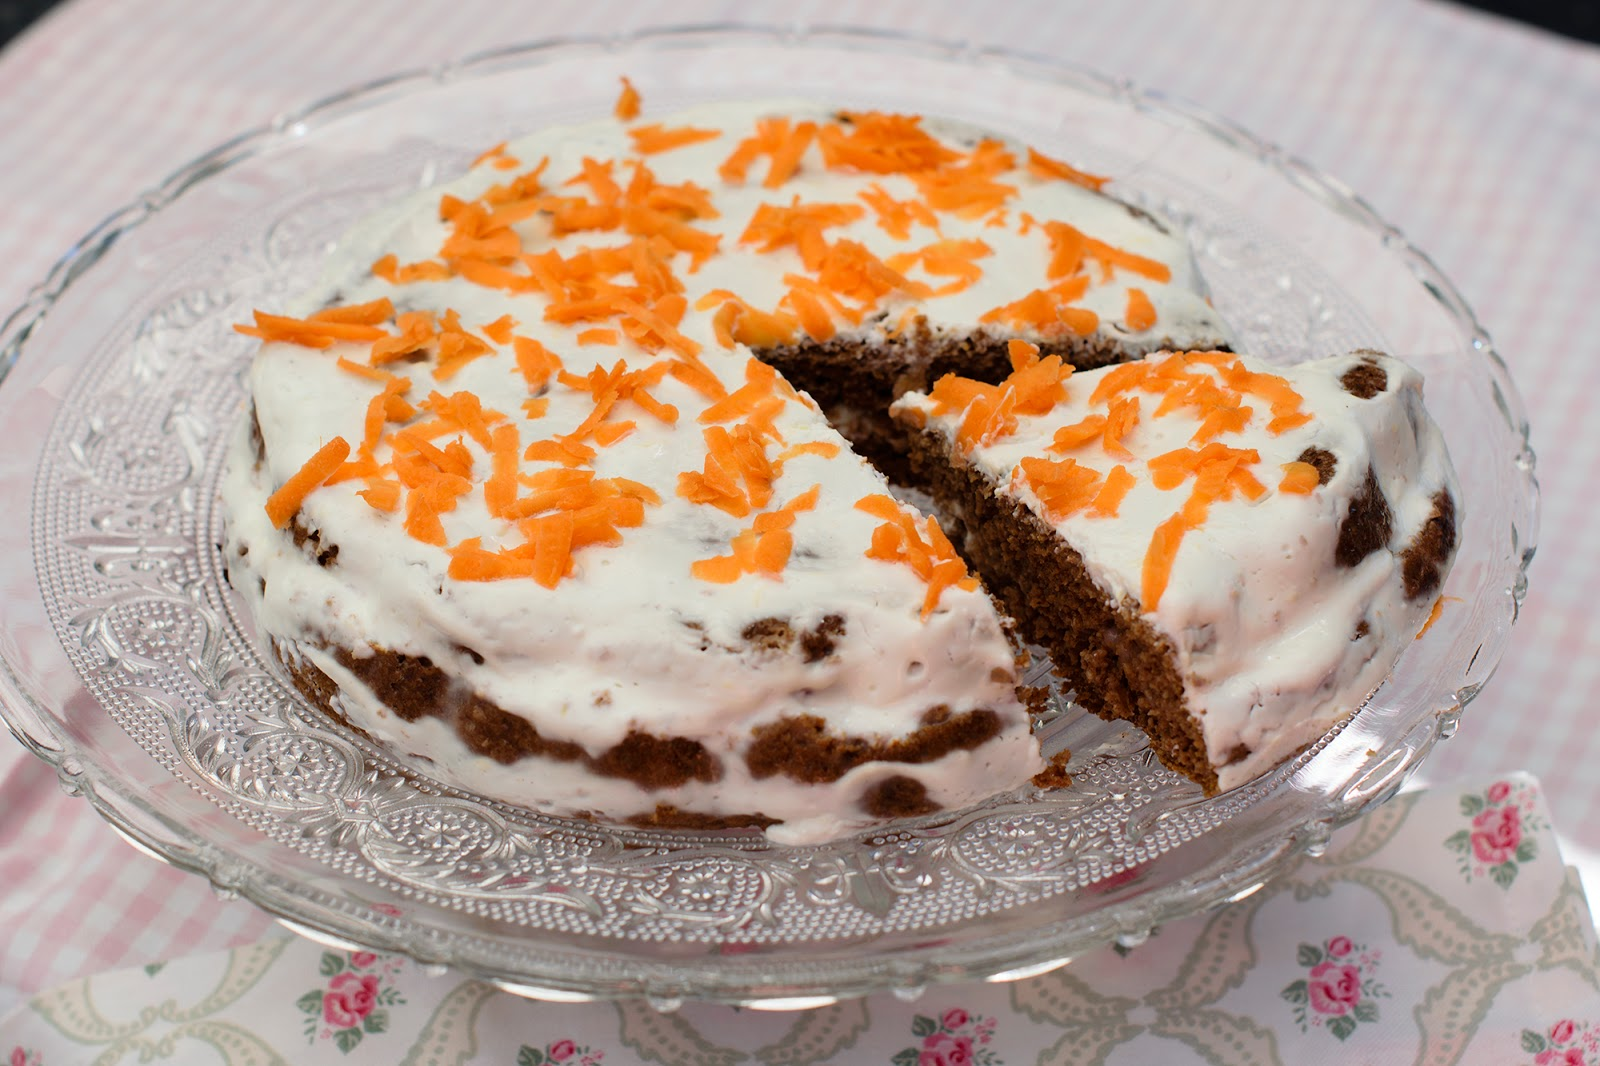 Carrot cake fit